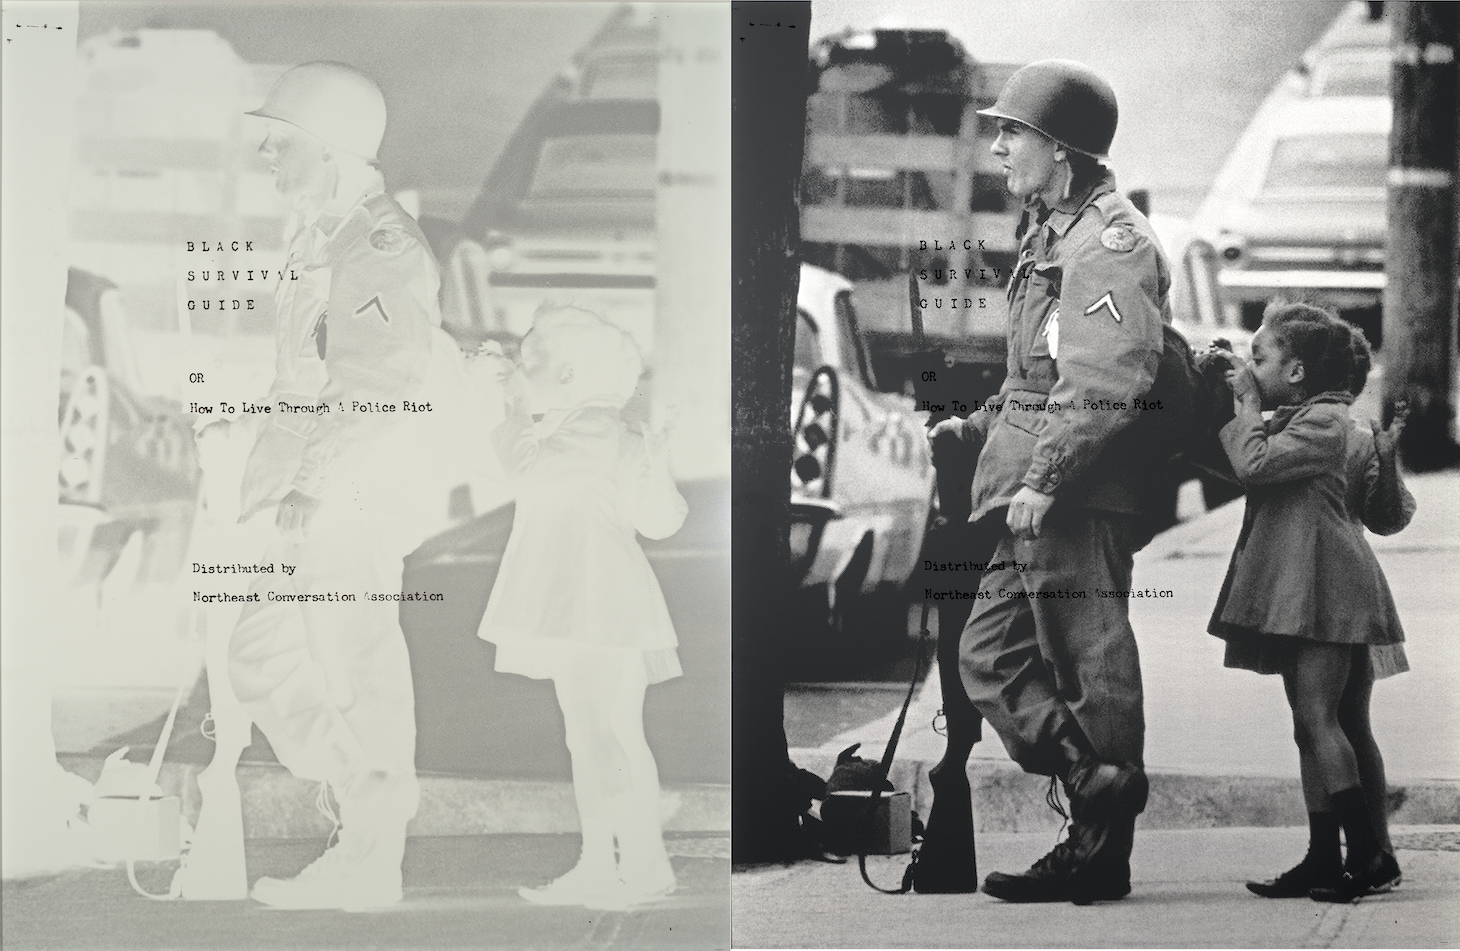 screen print on retroreflective vinyl with aluminum backing, photograph of Wilmington riots and National Guard occupation